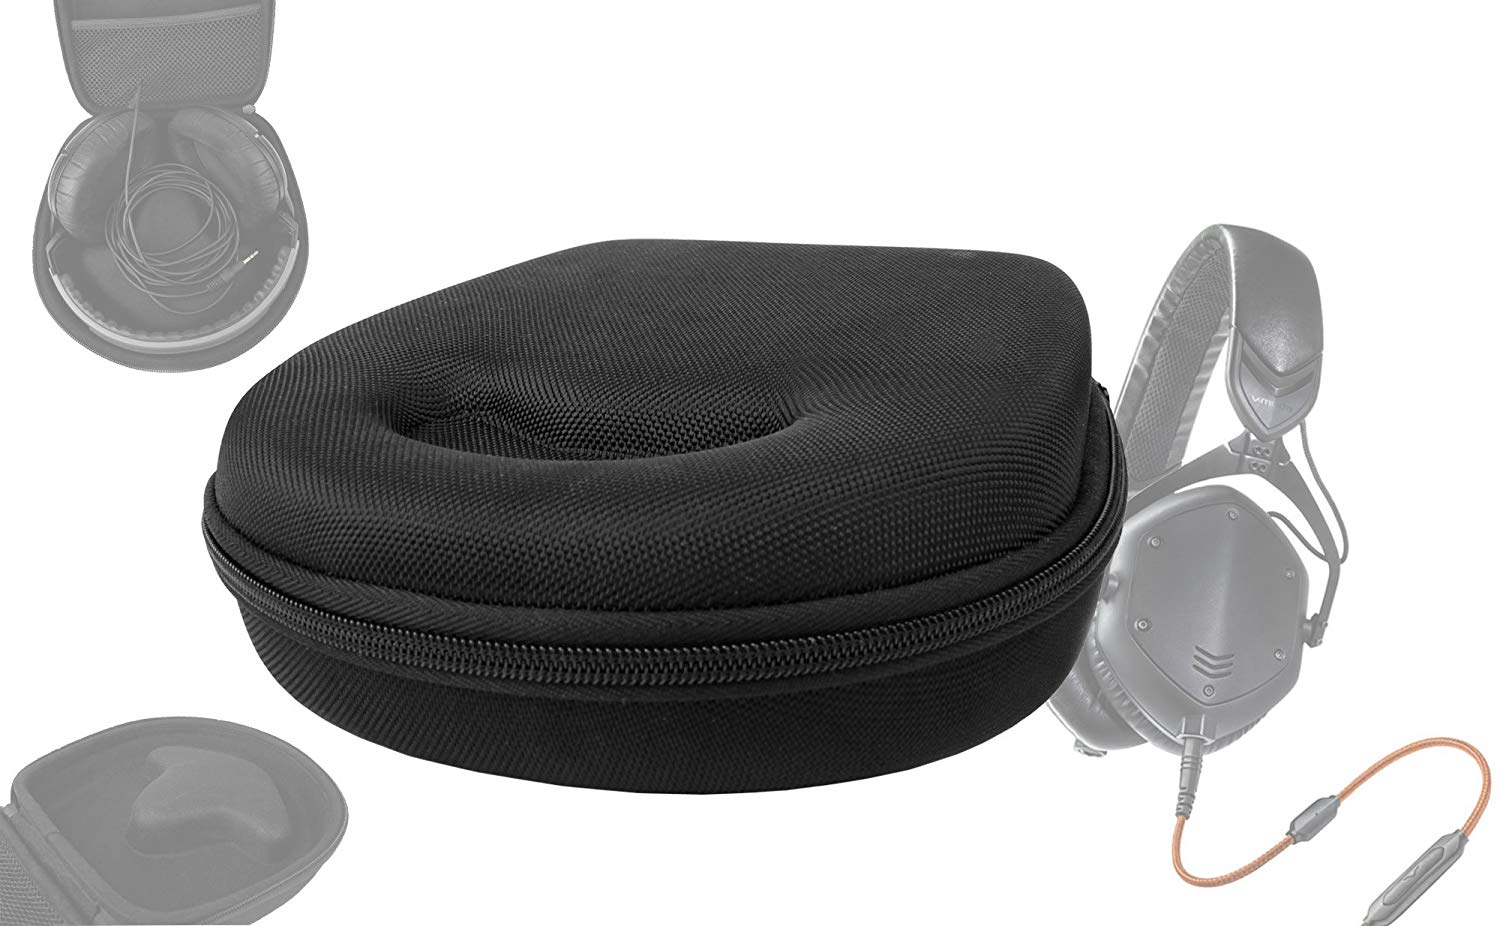 DURAGADGET Tough EVA Storage Case For Headphones/Earbuds, With Compartment (Black) For V-MODA Crossfade LP Over-Ear Noise-Isolating Metal Headphones